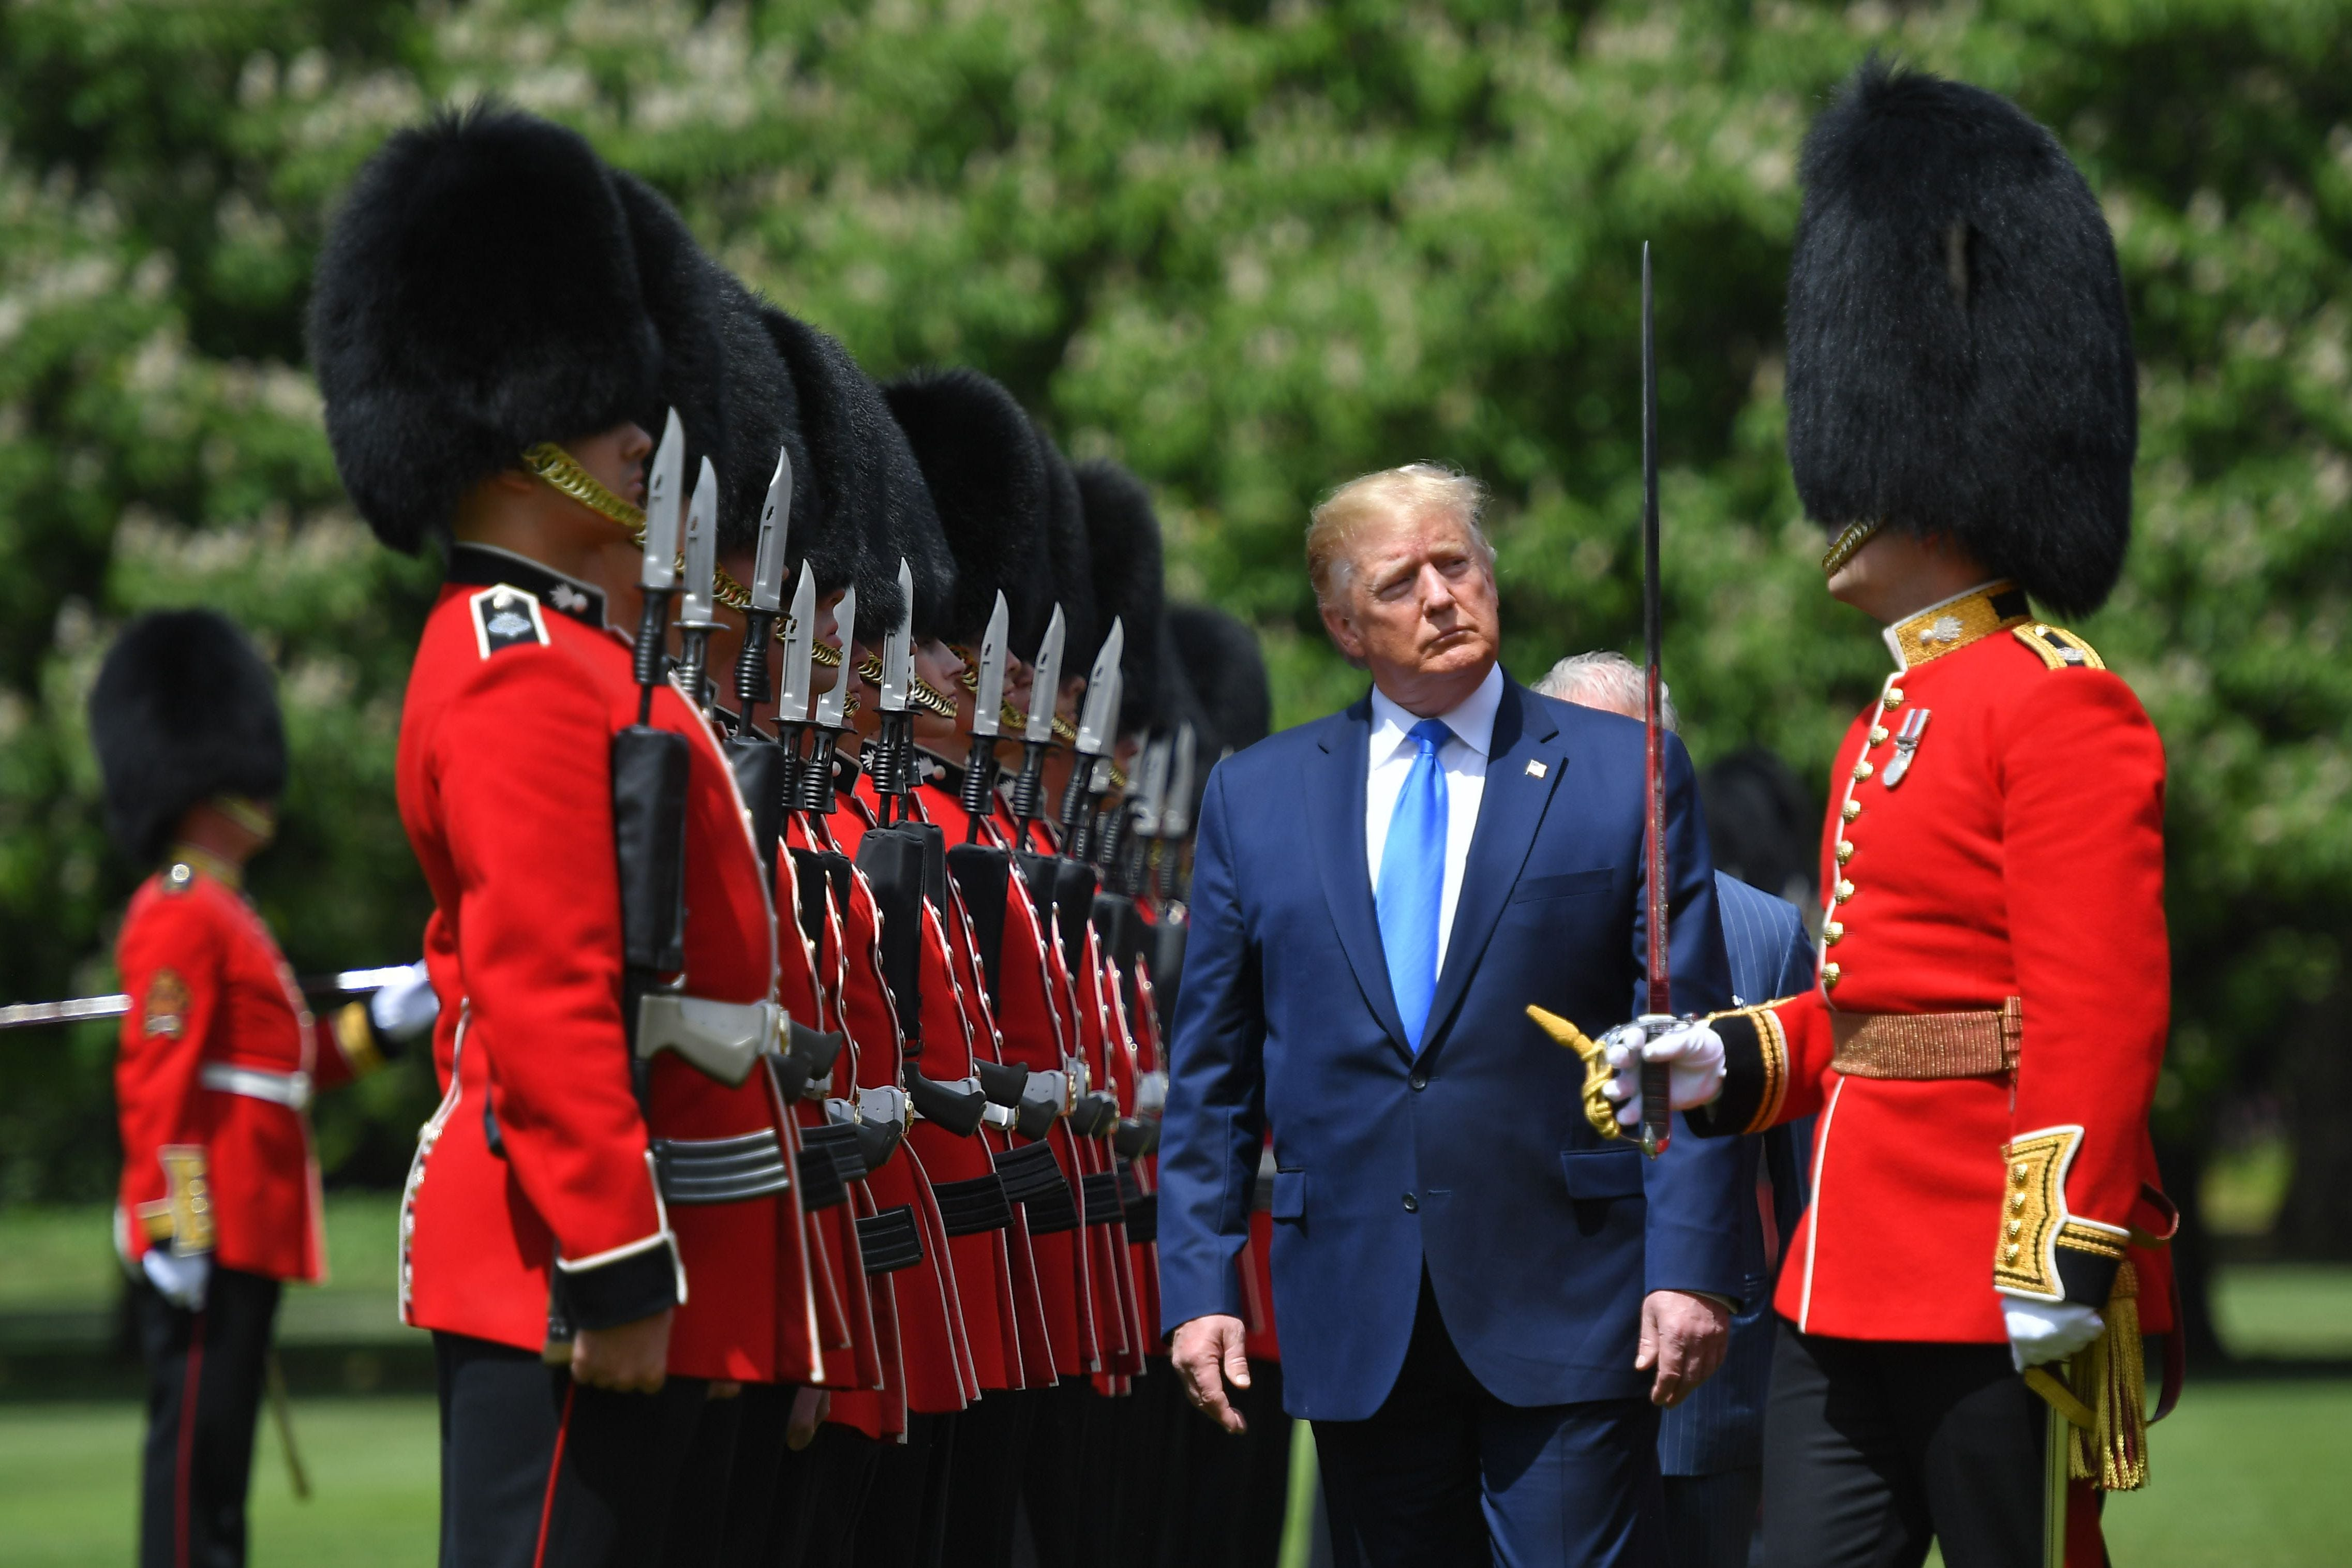 U.K. state visit turns from pomp and pageantry to foreign policy